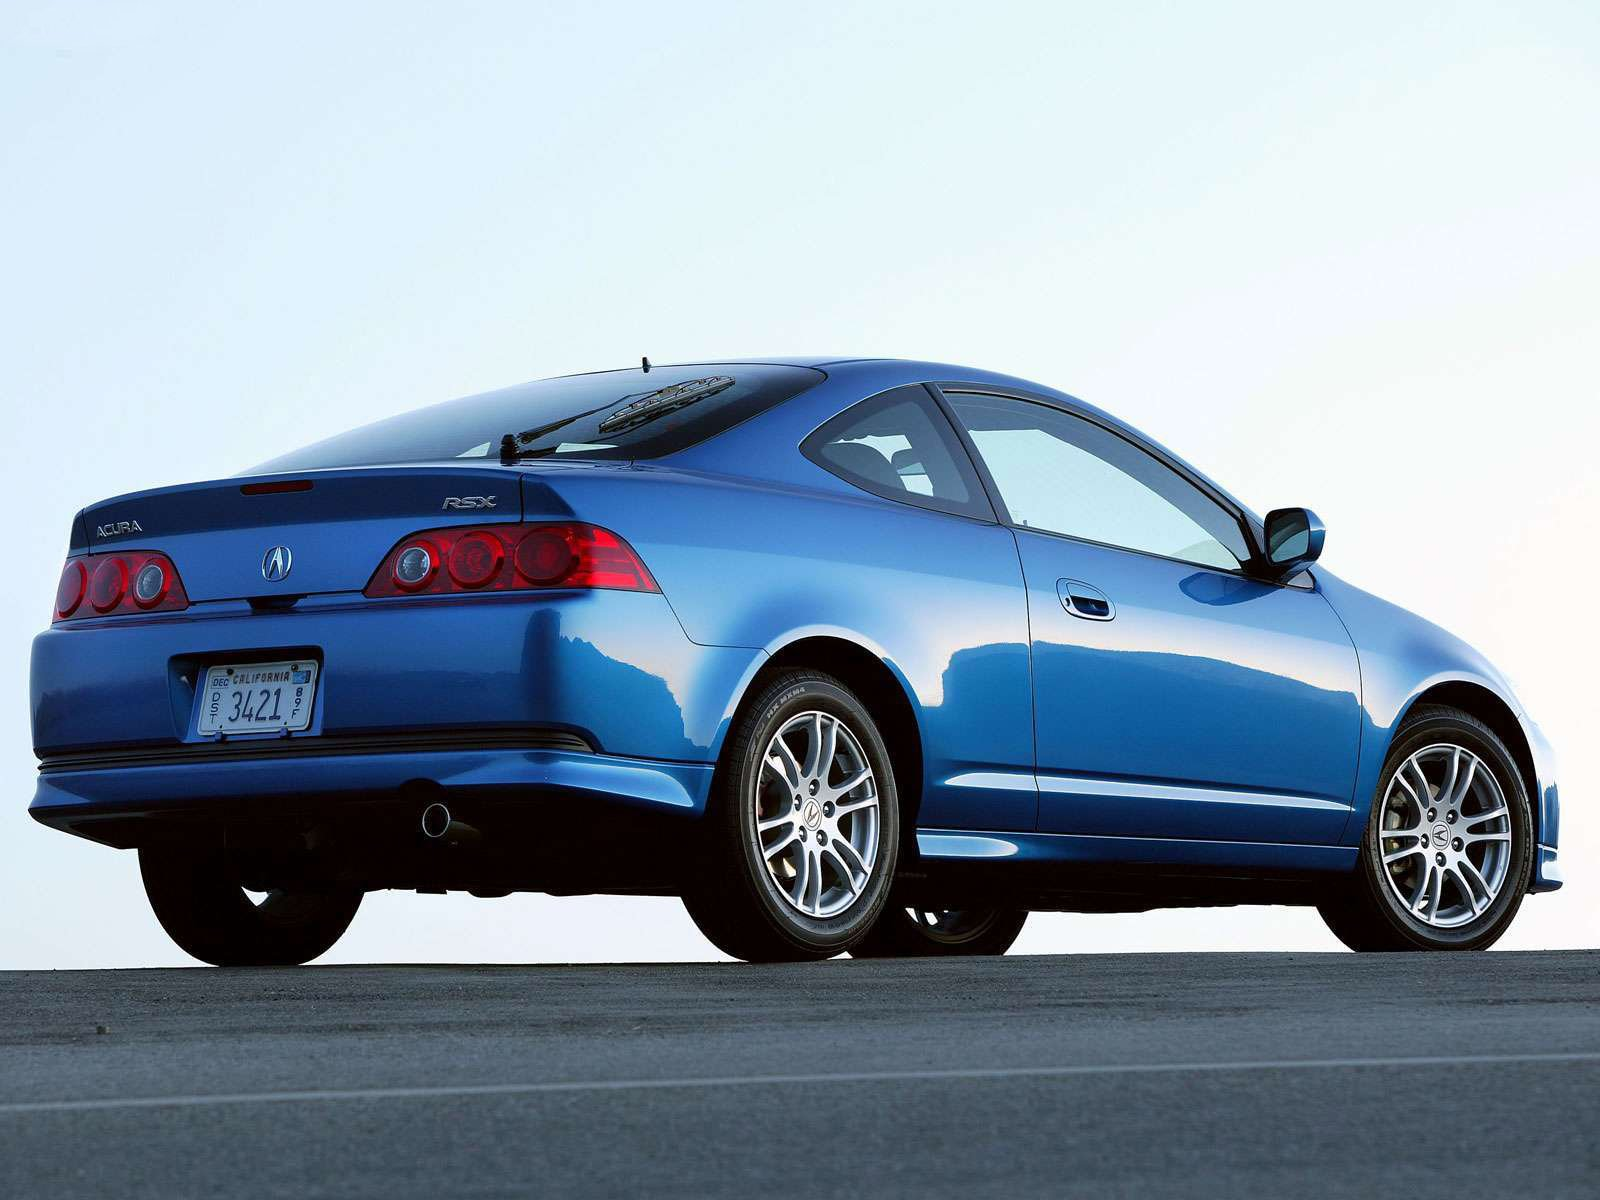 Latest 2005 Acura Rsx Japanese Car Photos Free Download